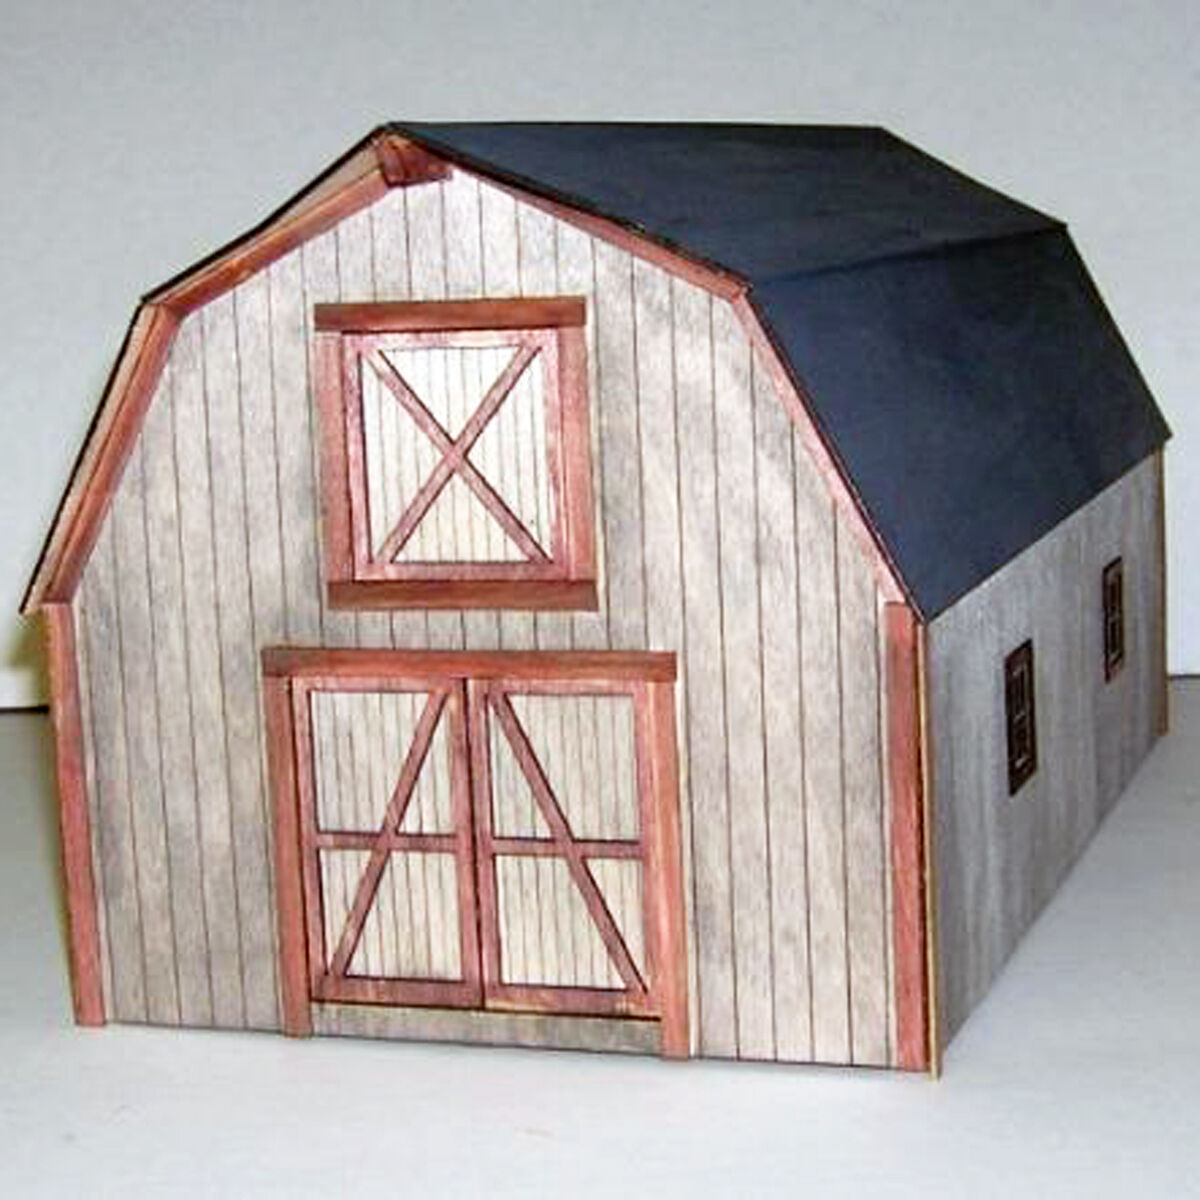 LANCASTER DAIRY BARN O On3 On30 ModelRailroad Structure Unptd Laser Kit  DF414